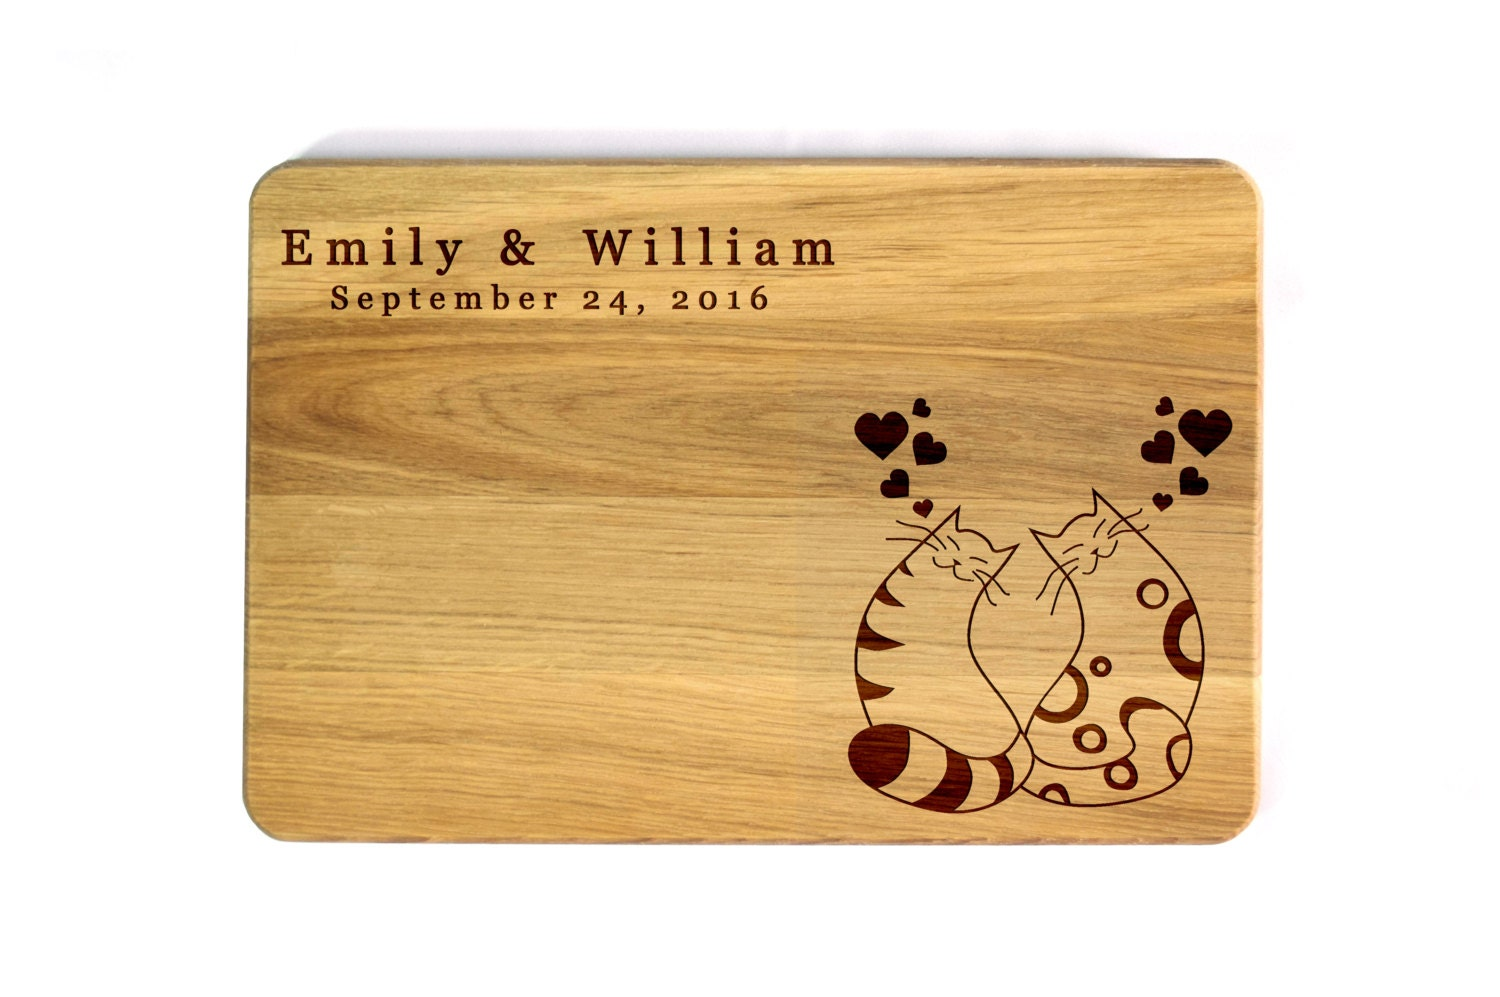 Personalized Wedding Gifts For Couples: Personalized Cutting Board Wedding Gift For Couple Wedding